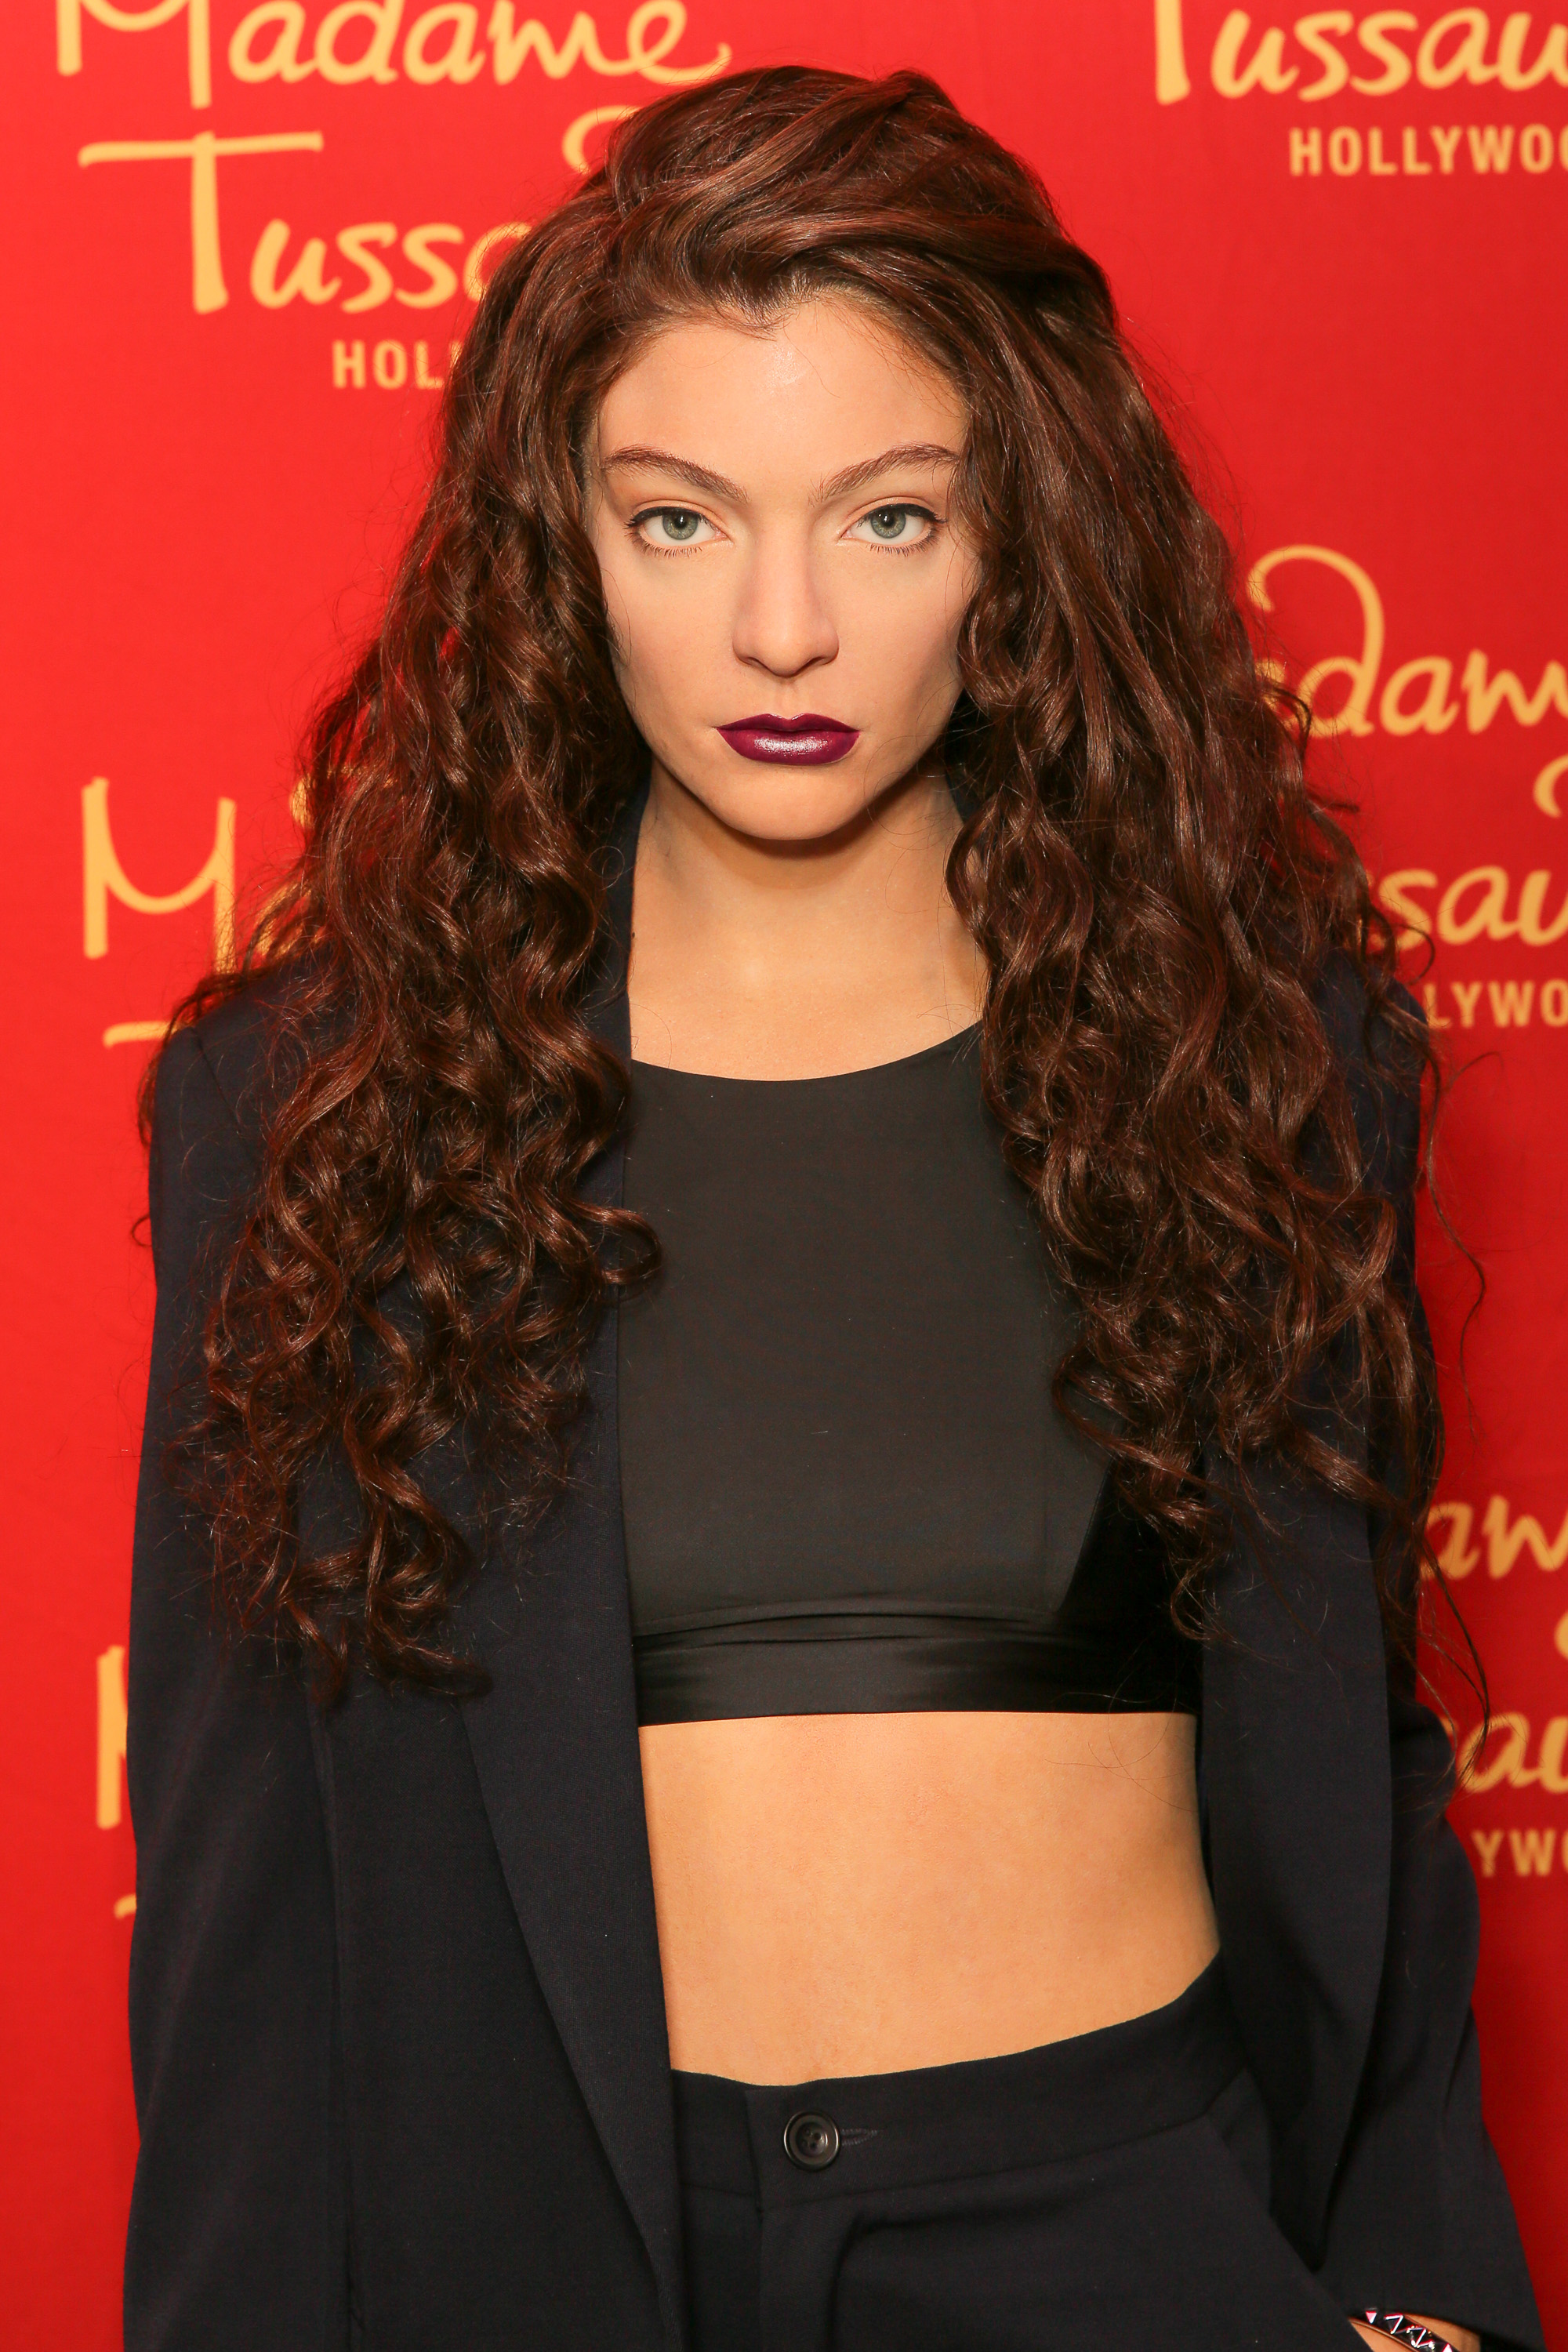 Grammy winning singer-songwriter Lorde is immortalized in wax at Madame Tussauds Hollywood.